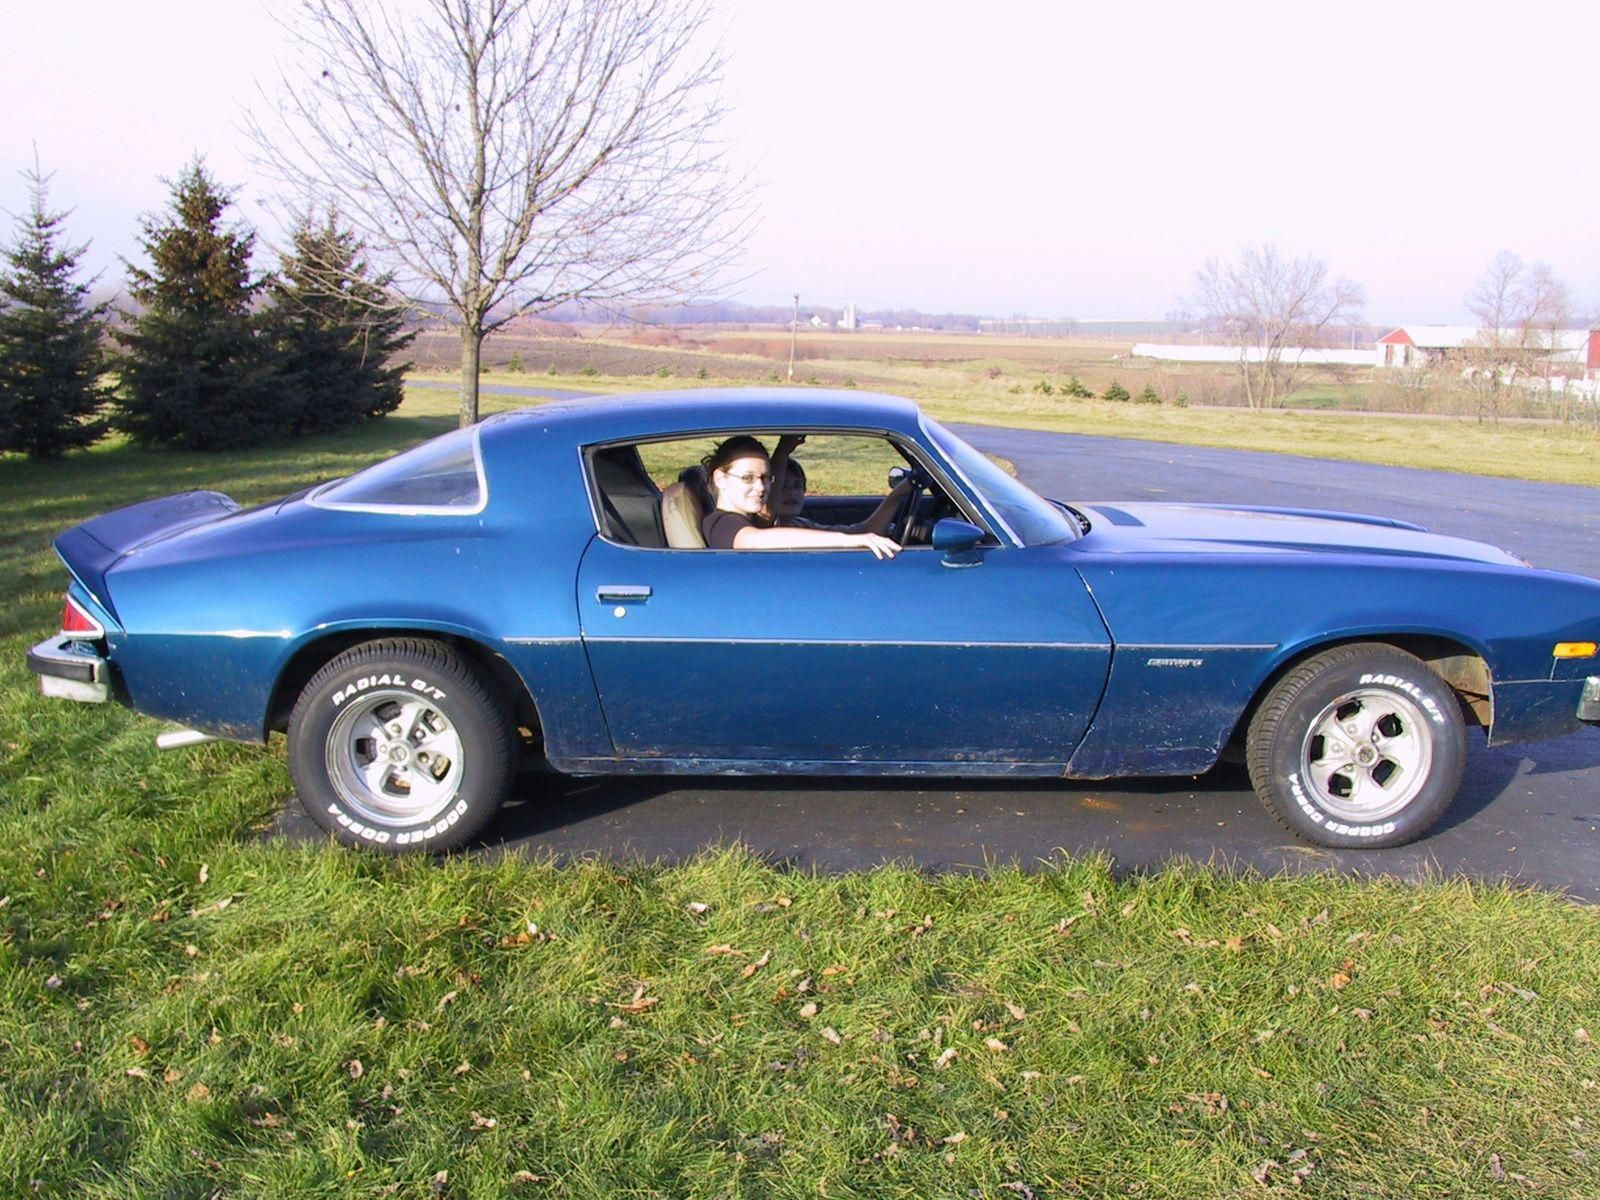 hight resolution of 1976 chevrolet camaro the first car i ever purchased bluecamaro